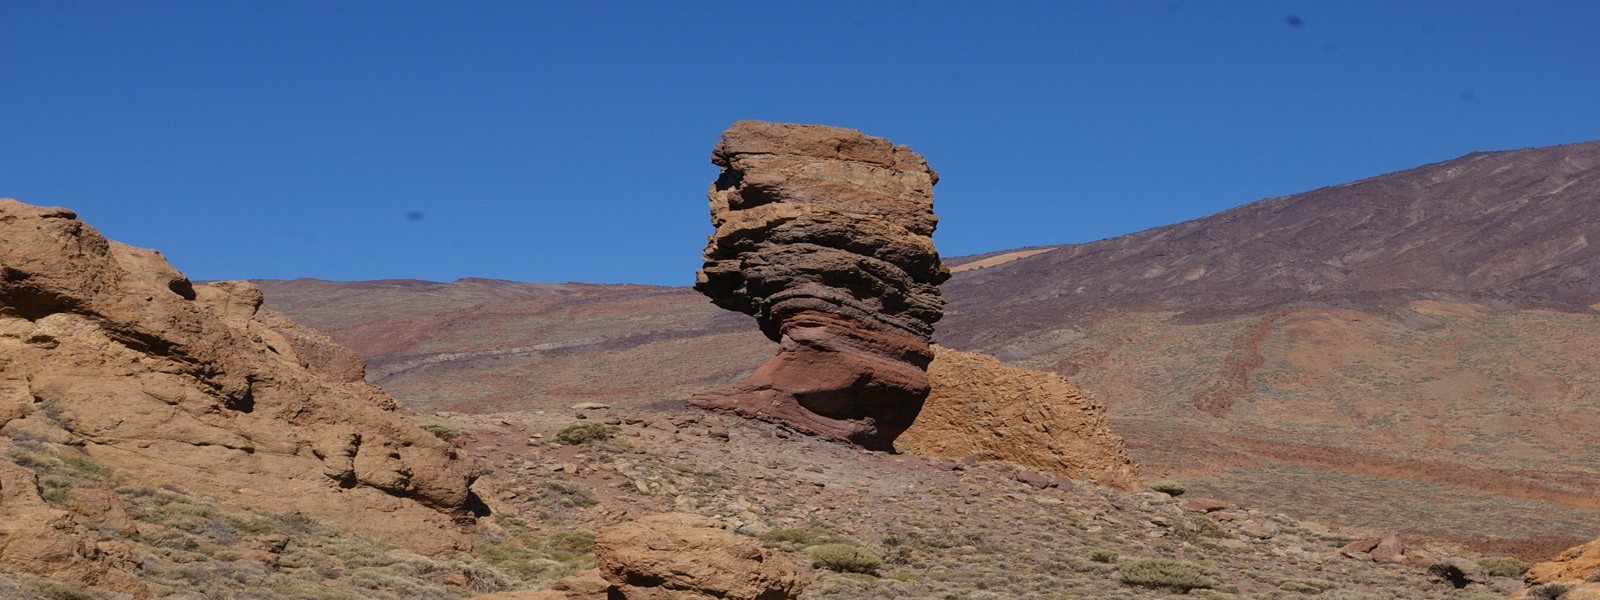 Tenerife: from mountain ranges to pilot whales and colonial towns!